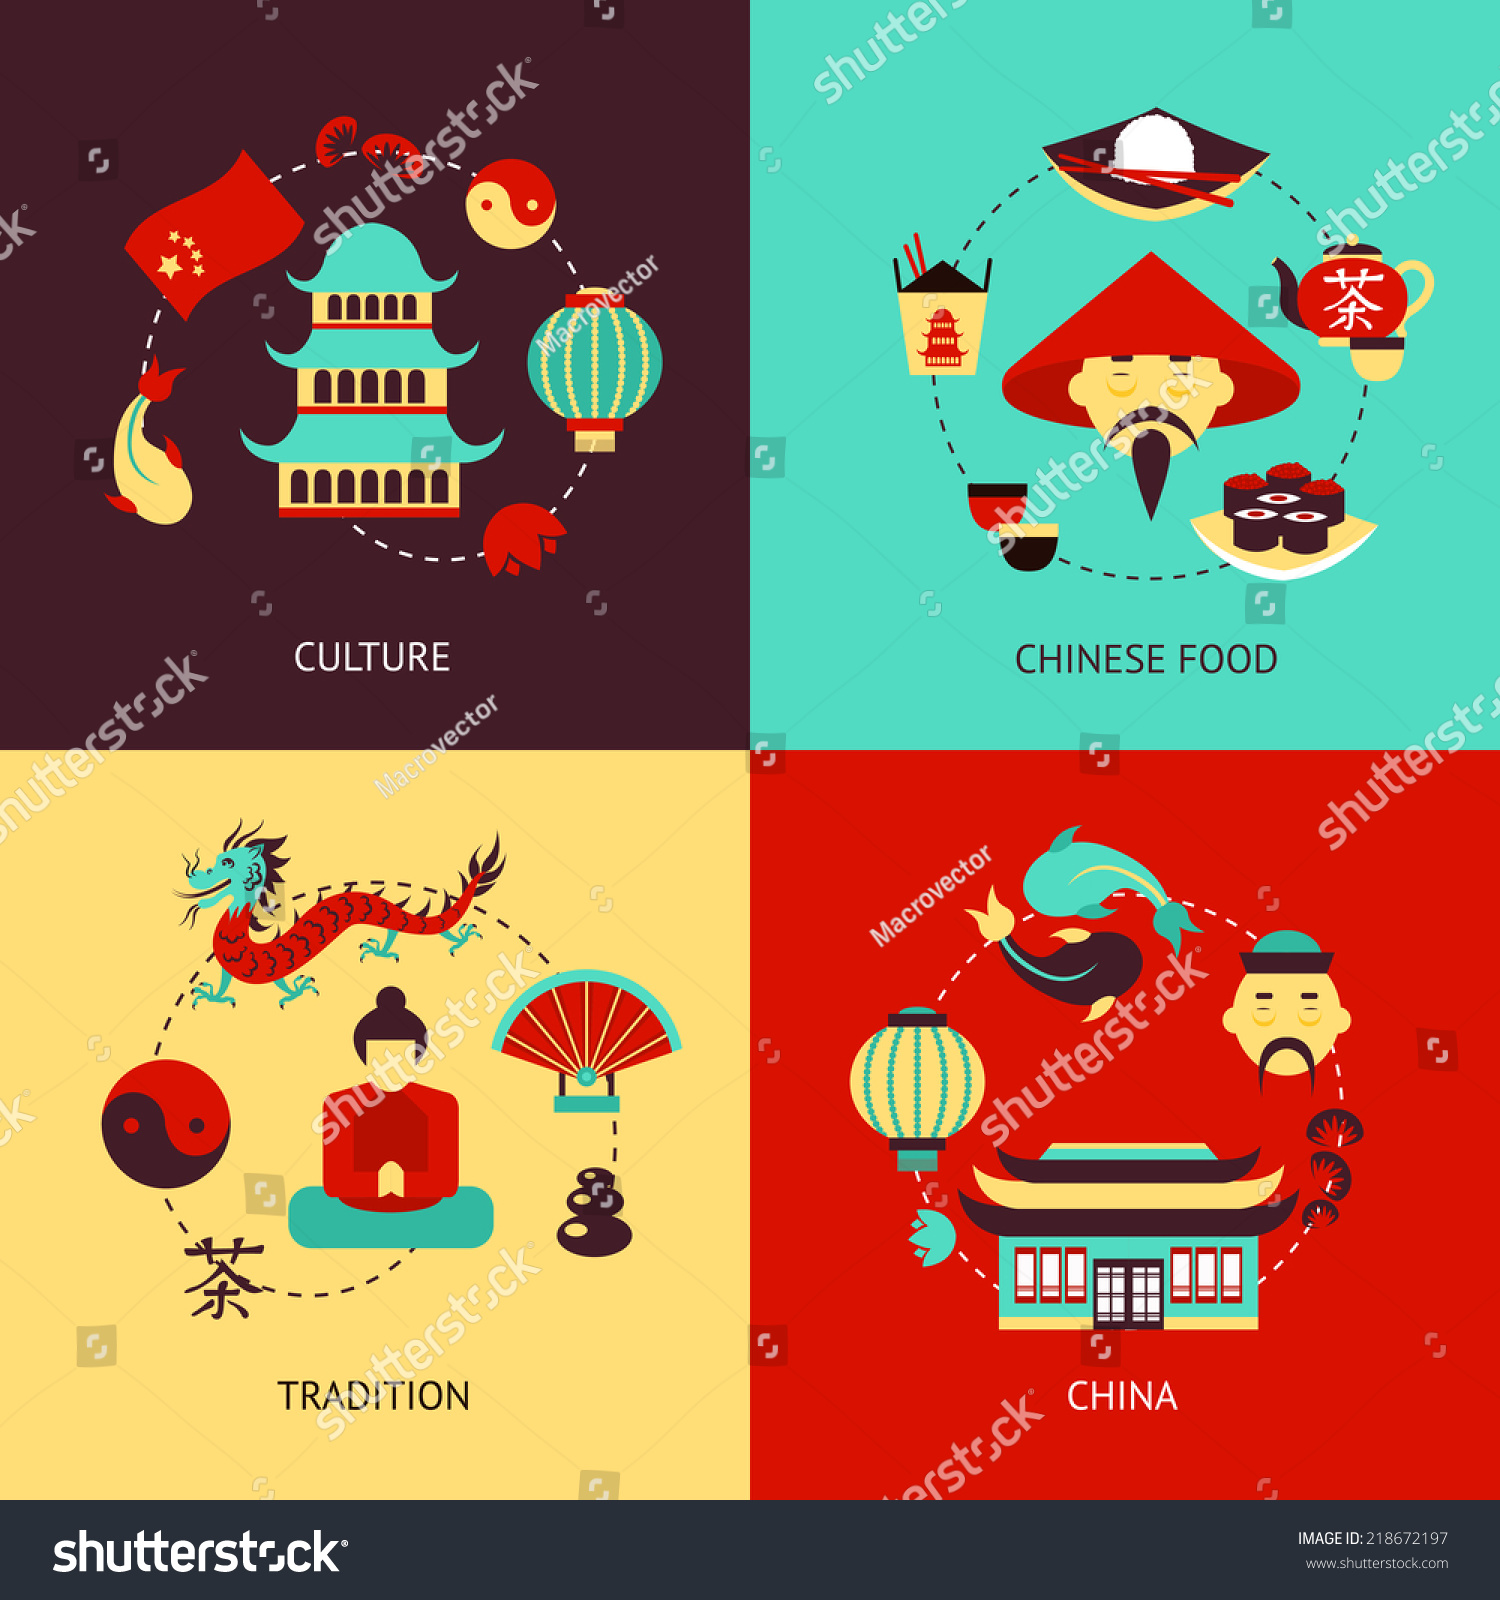 differences cultural in chinese food and